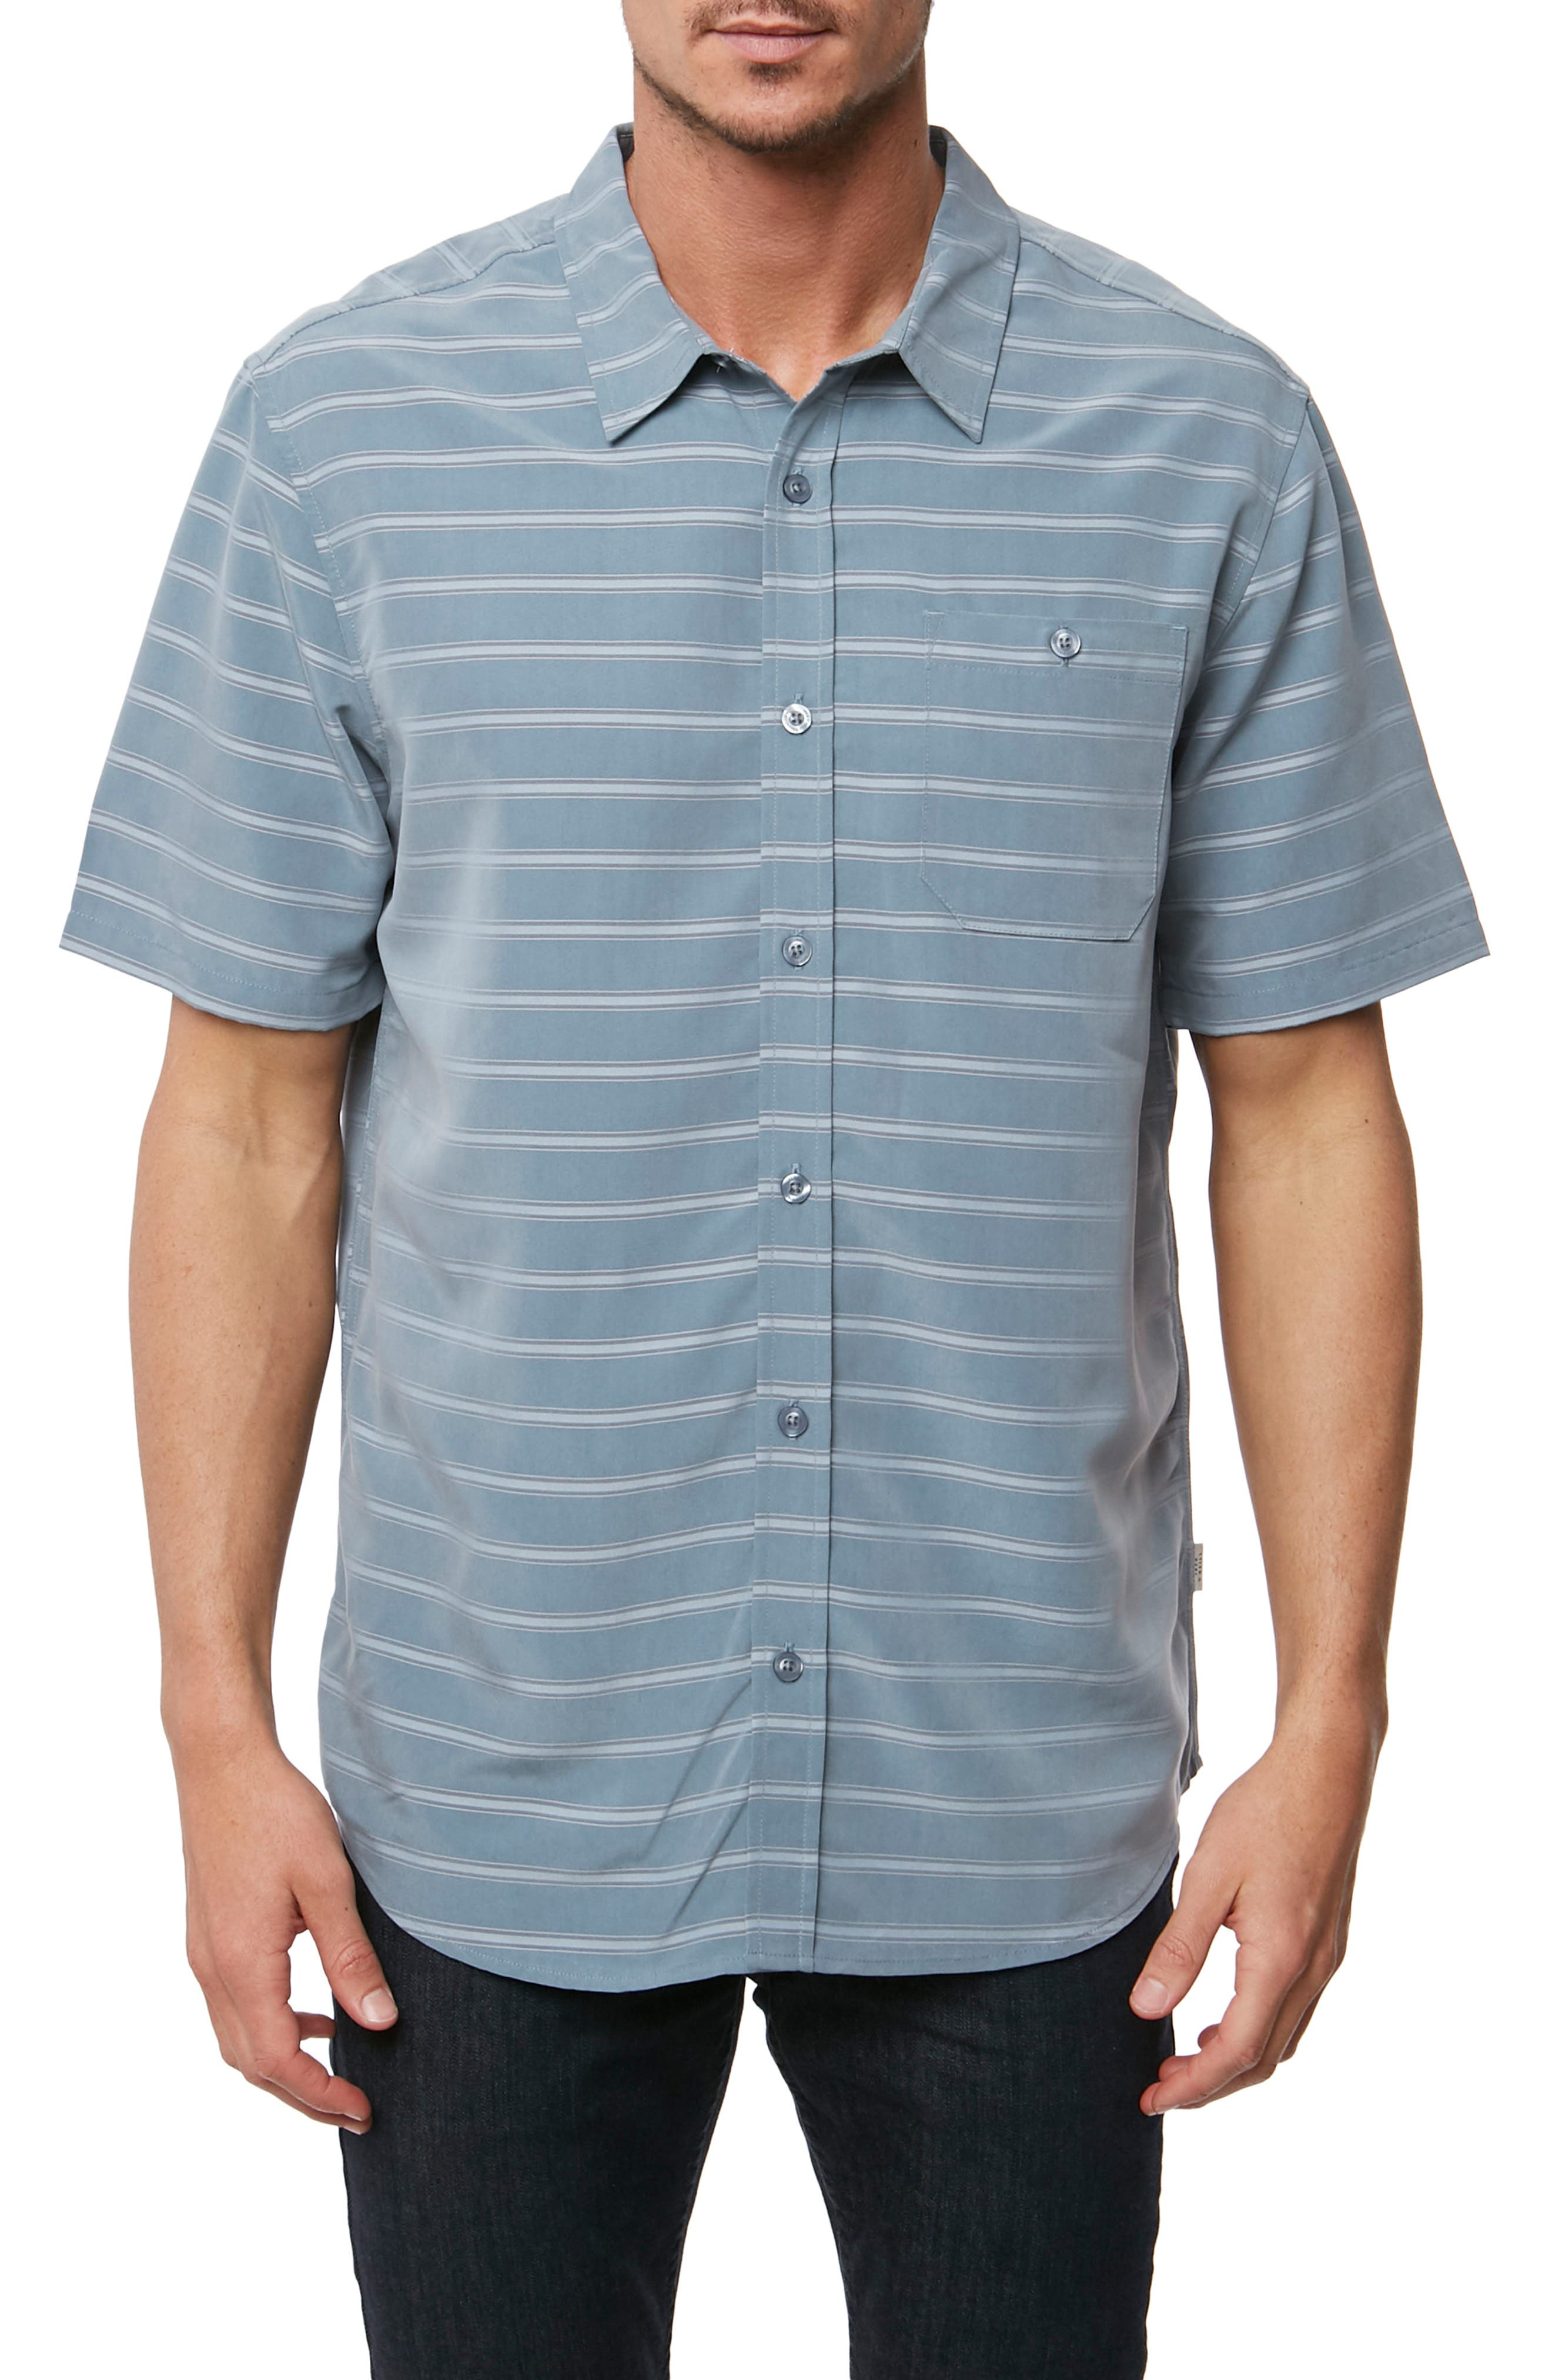 Slow Ride Sport Shirt,                         Main,                         color, Blue